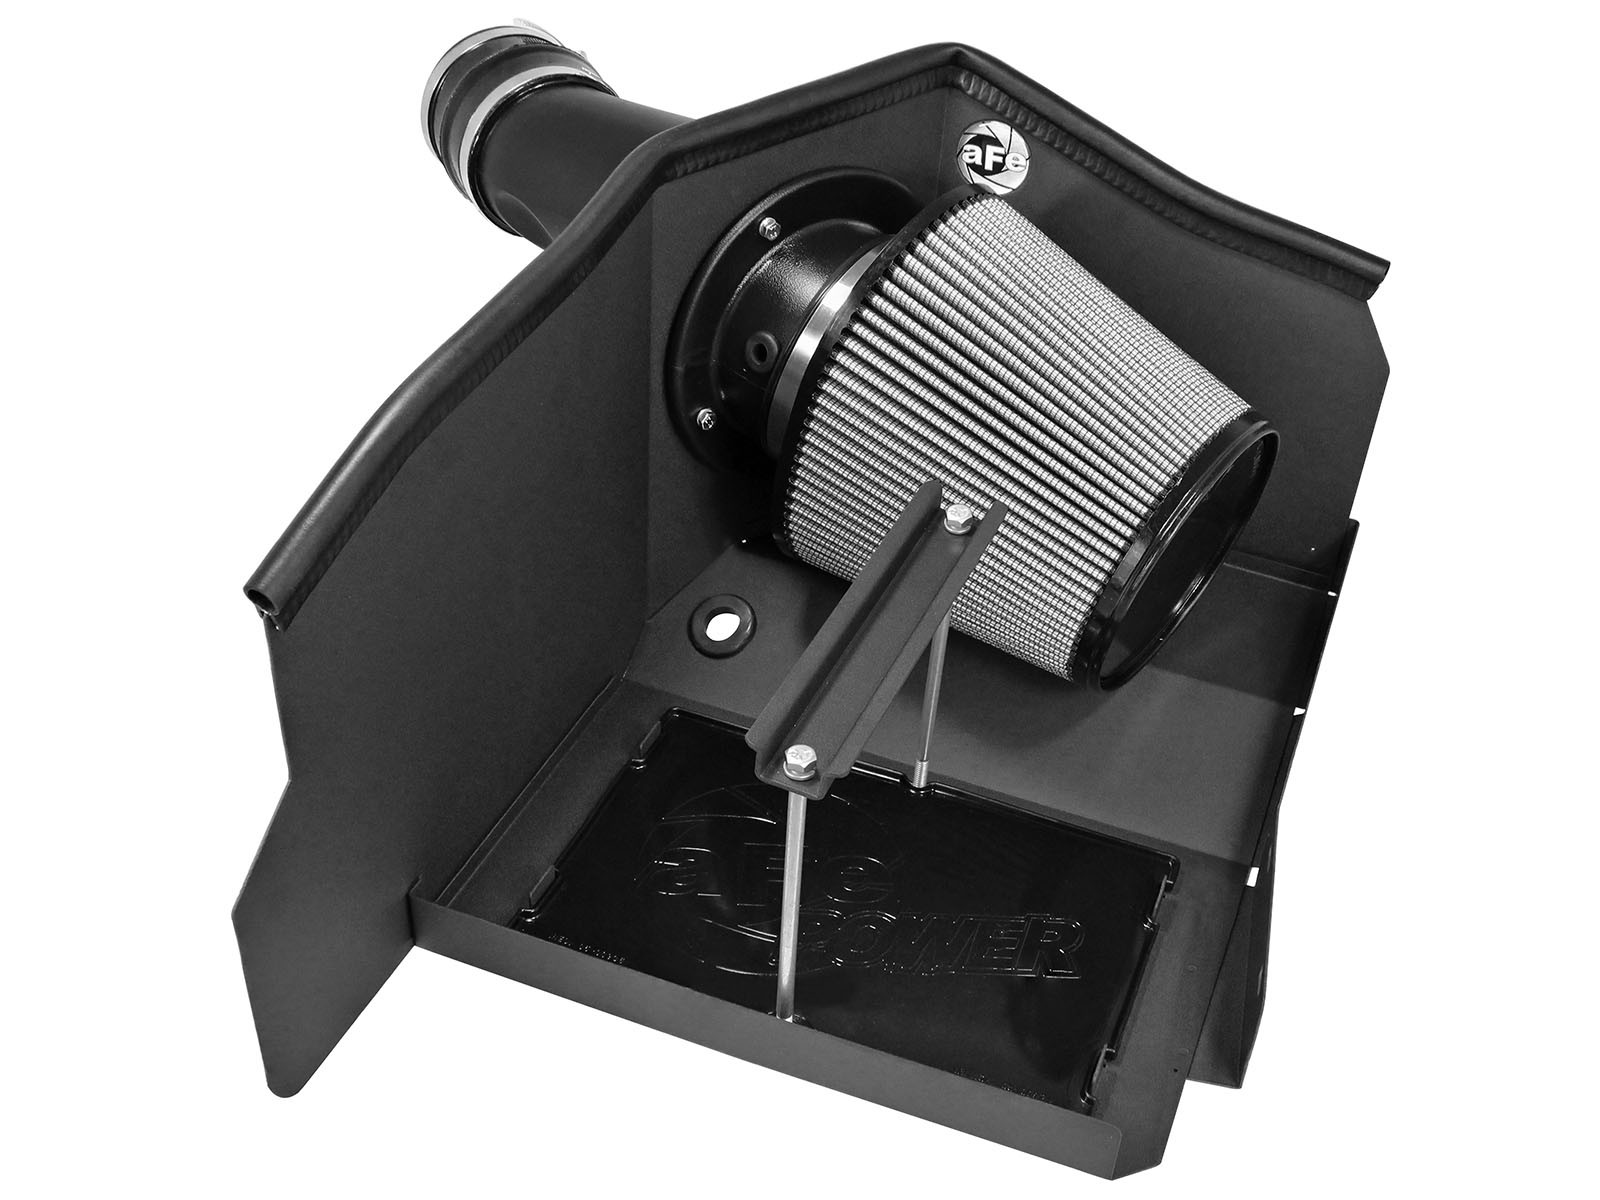 aFe POWER 51-10192 Magnum FORCE Stage-2 Pro DRY S Cold Air Intake System